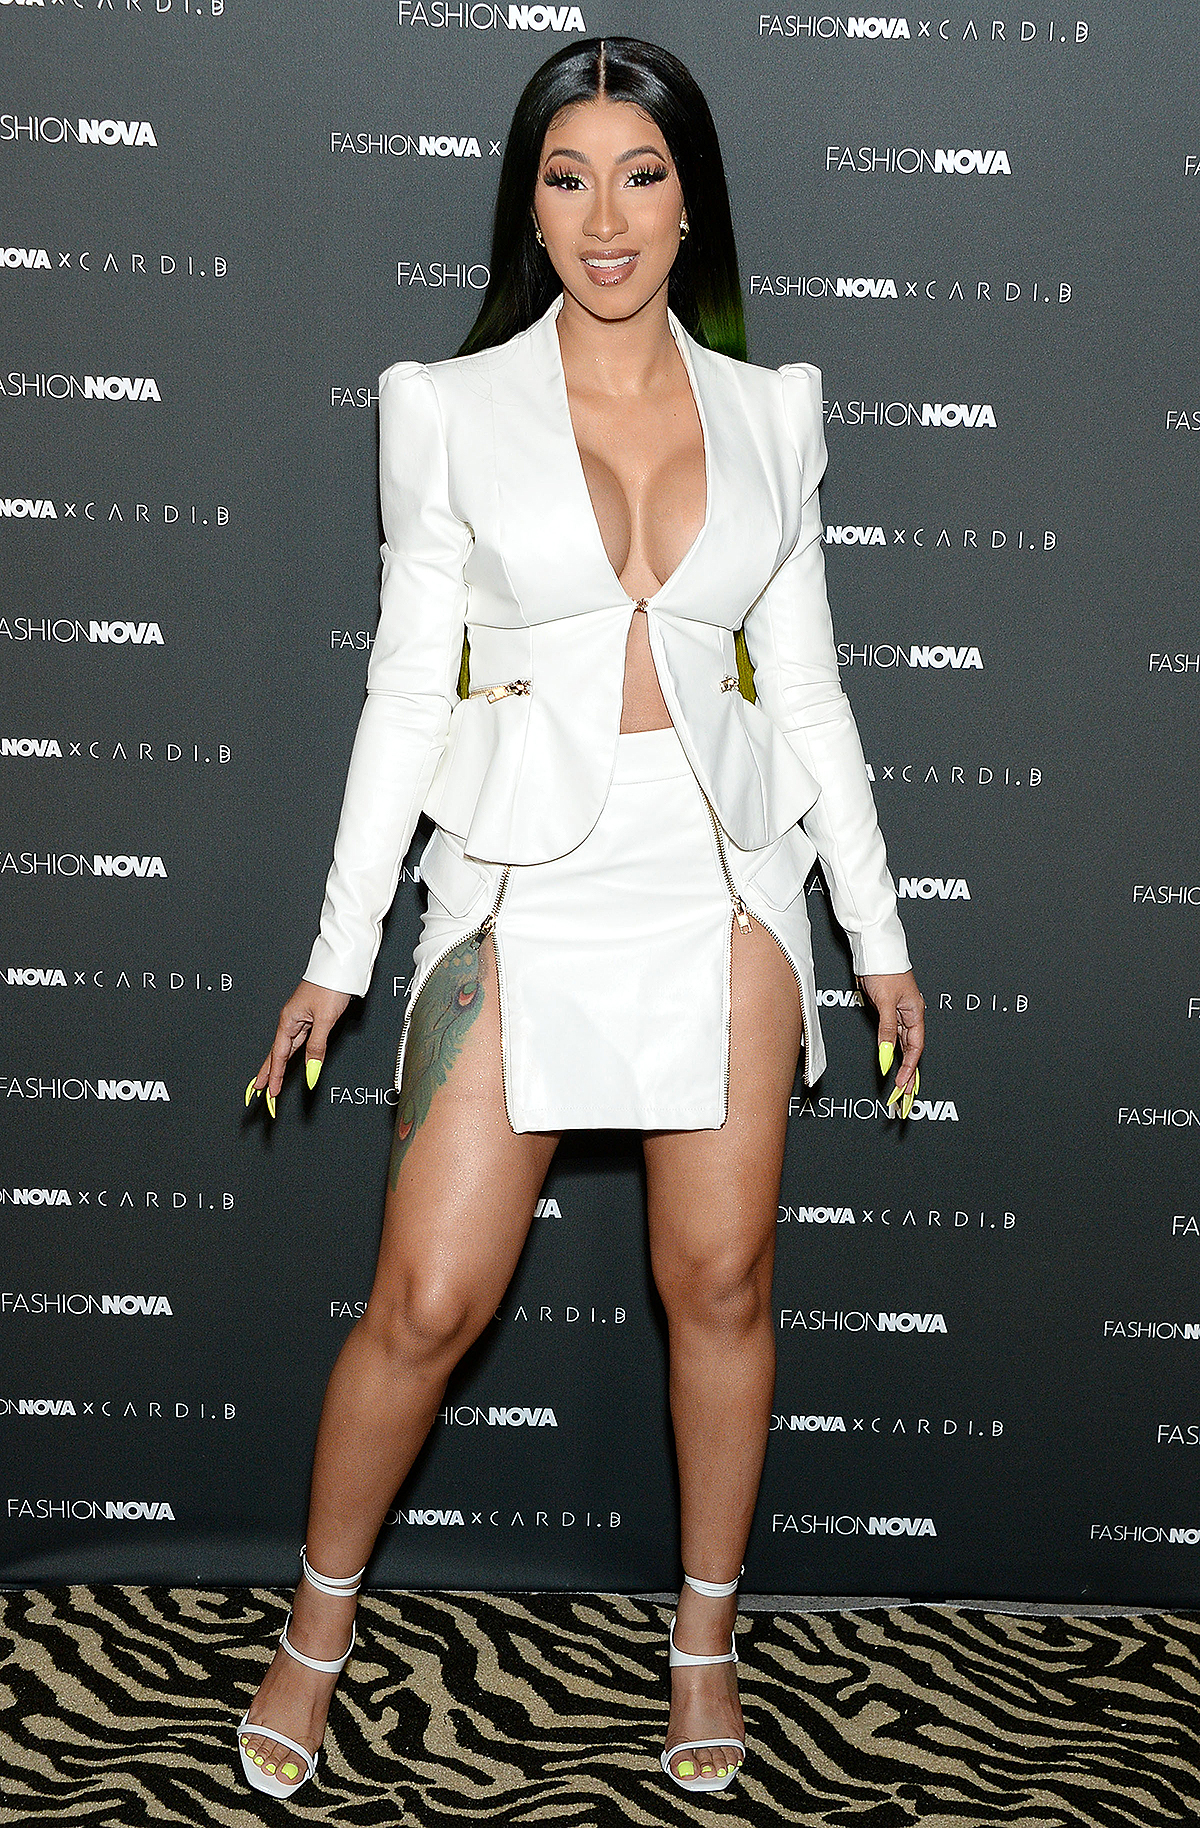 Fashion Nova x Cardi B Collection Launch Event, Arrivals, Los Angeles, USA - 08 May 2019